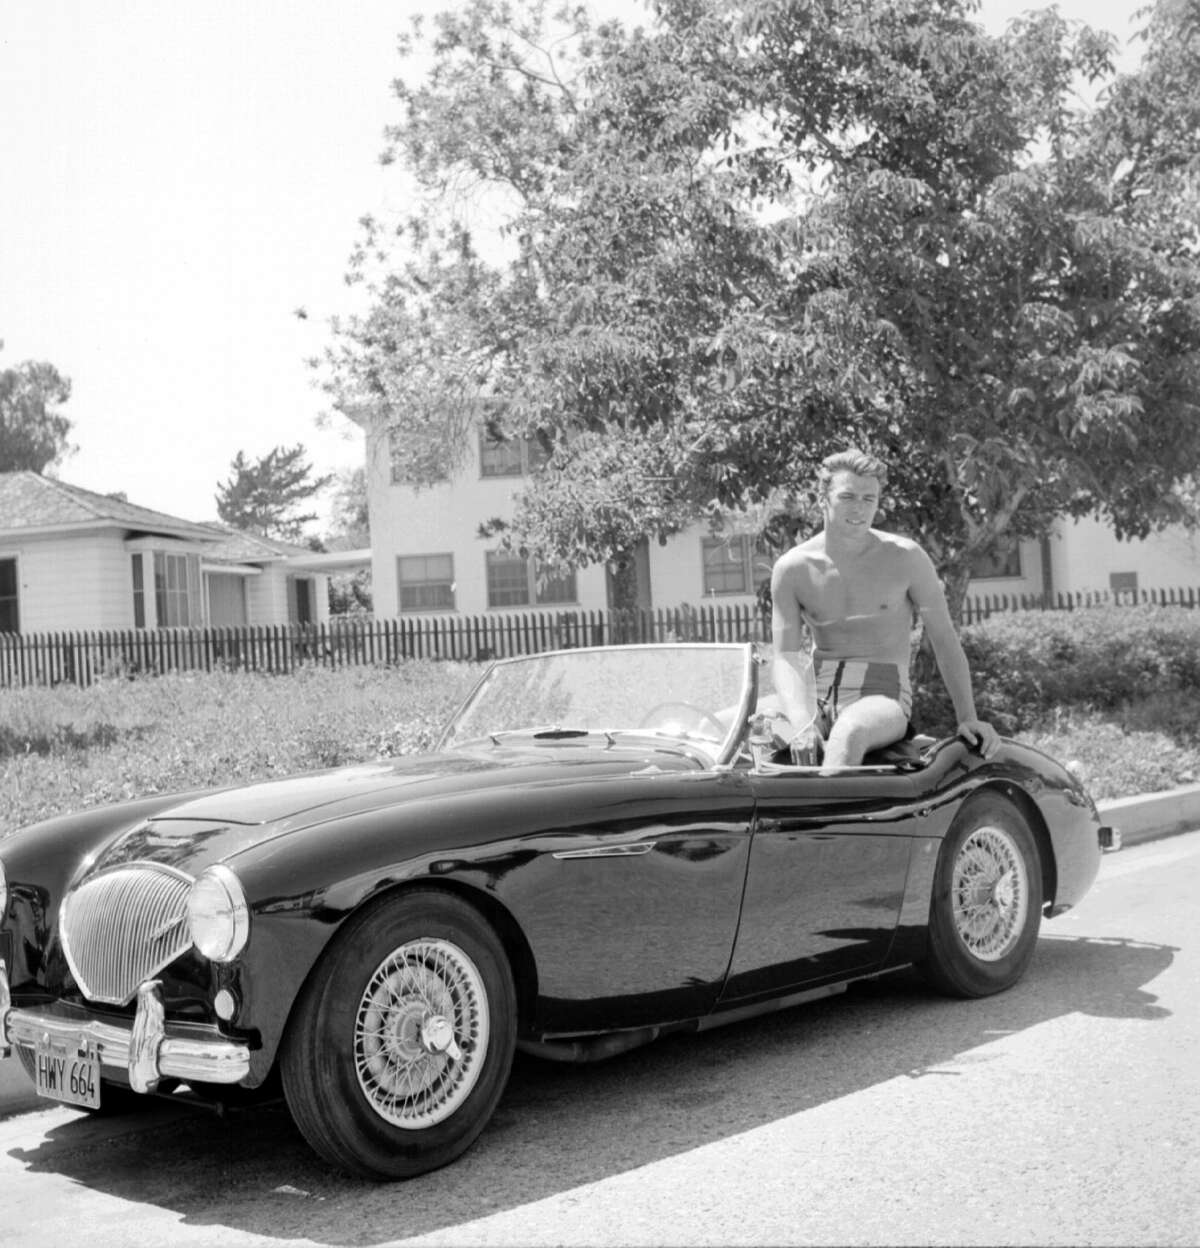 Actor Clint Eastwood sits the back of a convertible Austin Healey sportscar on June 1, 1956 in Los Angeles.